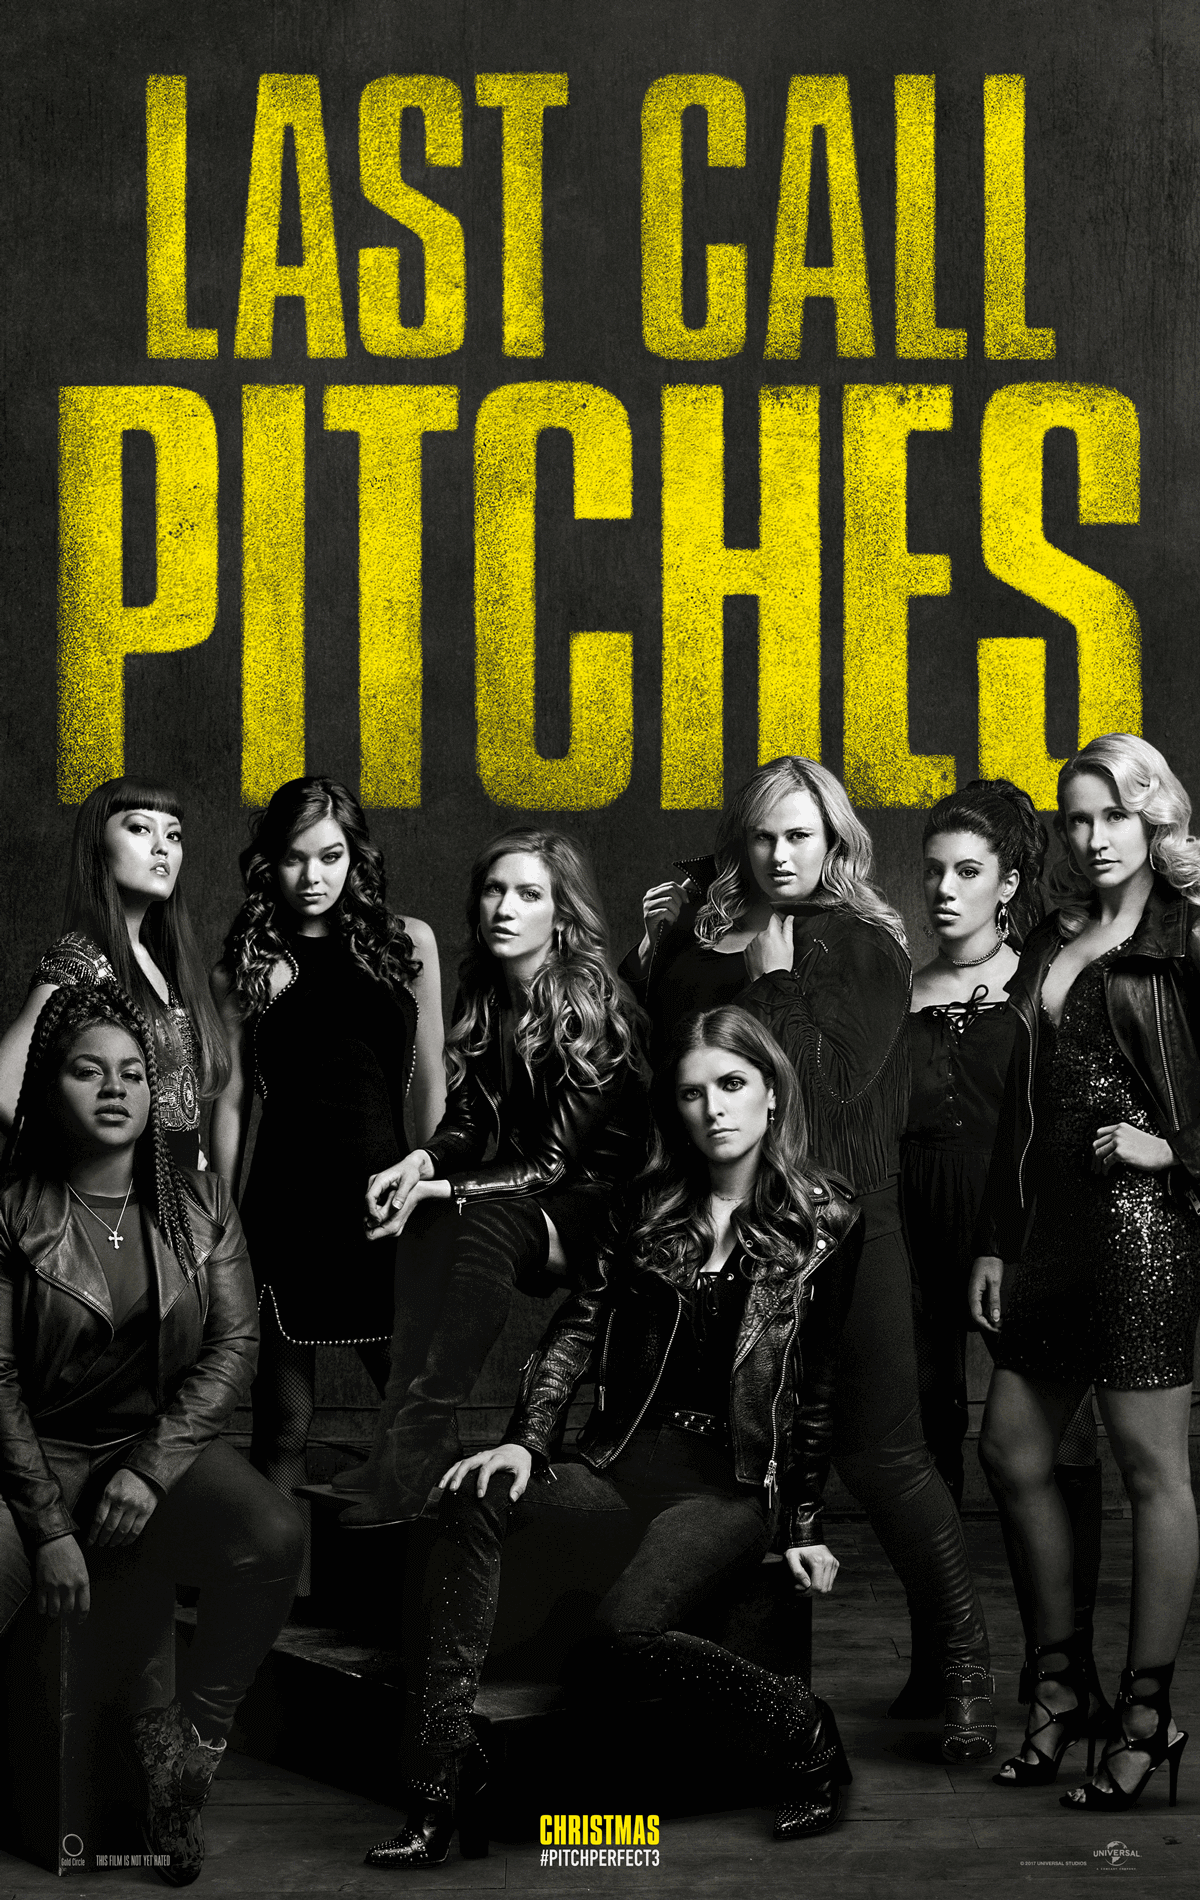 The Bellas reunite one last time in the first trailer for Pitch Perfect last chapter of the popular musical trilogy featuring Anna Kendrick, Rebel Wilson, Brittany Snow, Anna Camp, Elizabeth Banks and Hailee Steinfeld. Films Hd, Imdb Movies, Top Movies, Comedy Movies, Movies To Watch, 2017 Movies, Movie Film, Comedy Music, Anna Camp